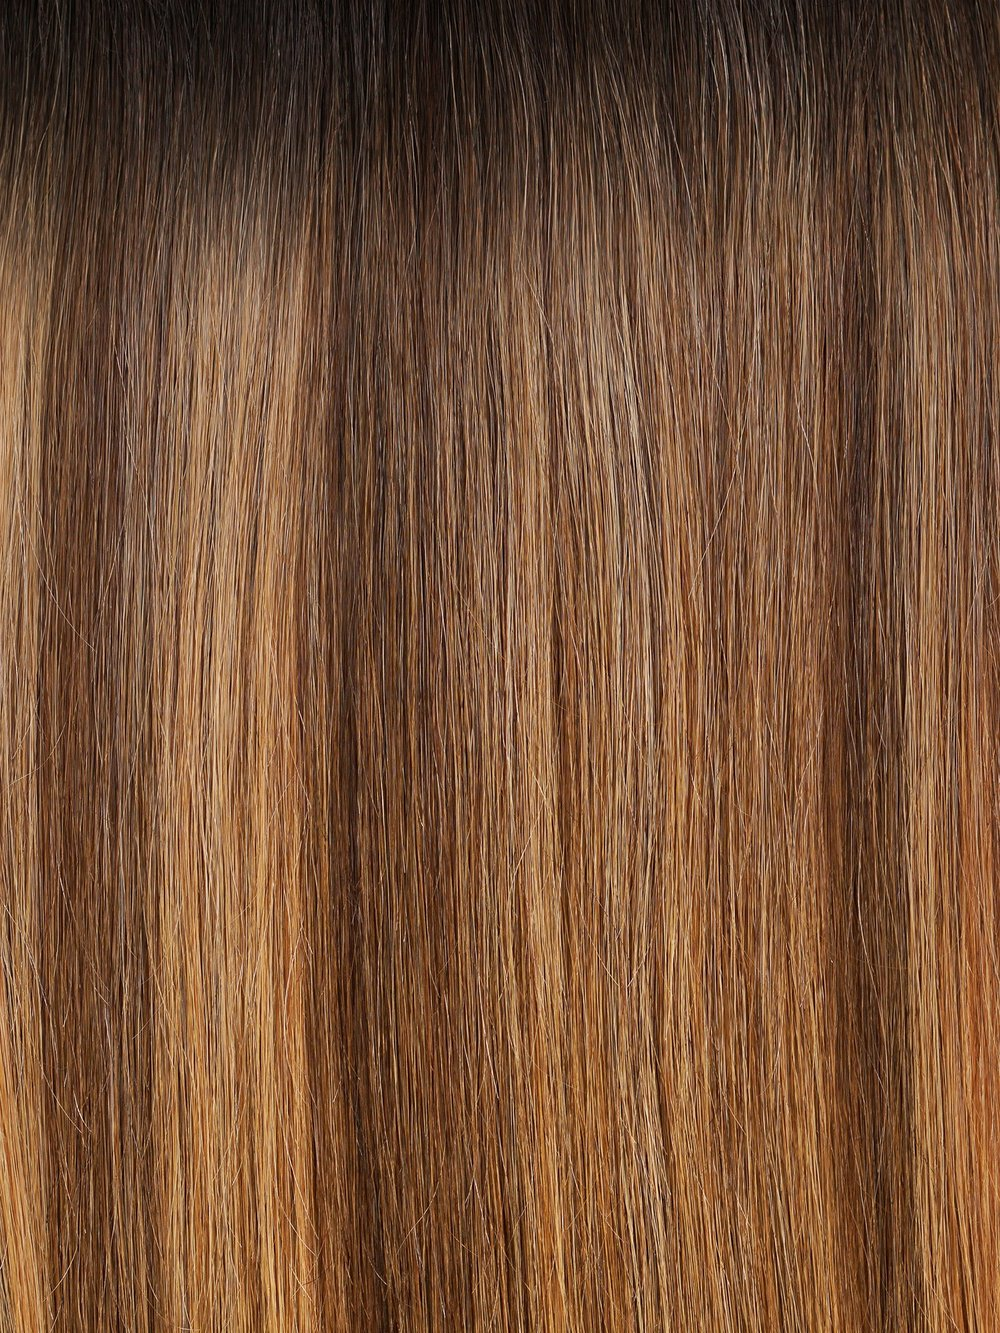 Caramel Brown Highlights #R2/479 - Dark and light join for an effortless marriage of natural color. This dimensional brown shade has a deep brown base that spans roughly 2